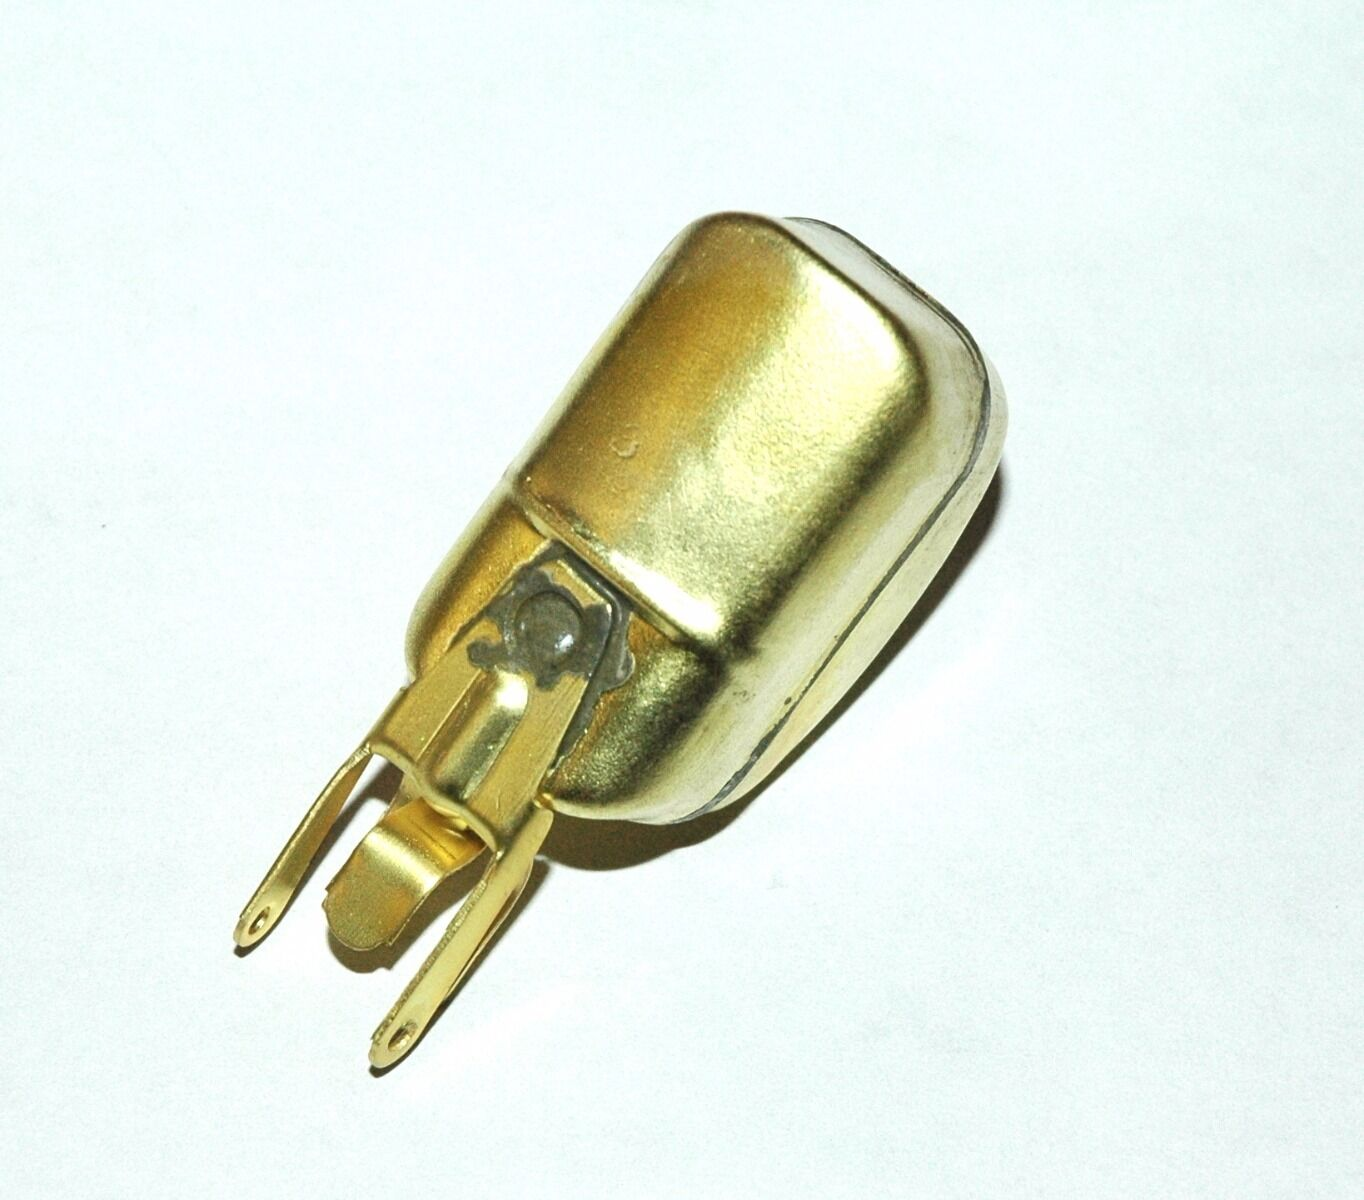 1946 49 BRASS FLOAT CARTER WA-1 1 BARREL WILLYS & JEEP 6 CYLINDER ENGINES NEW